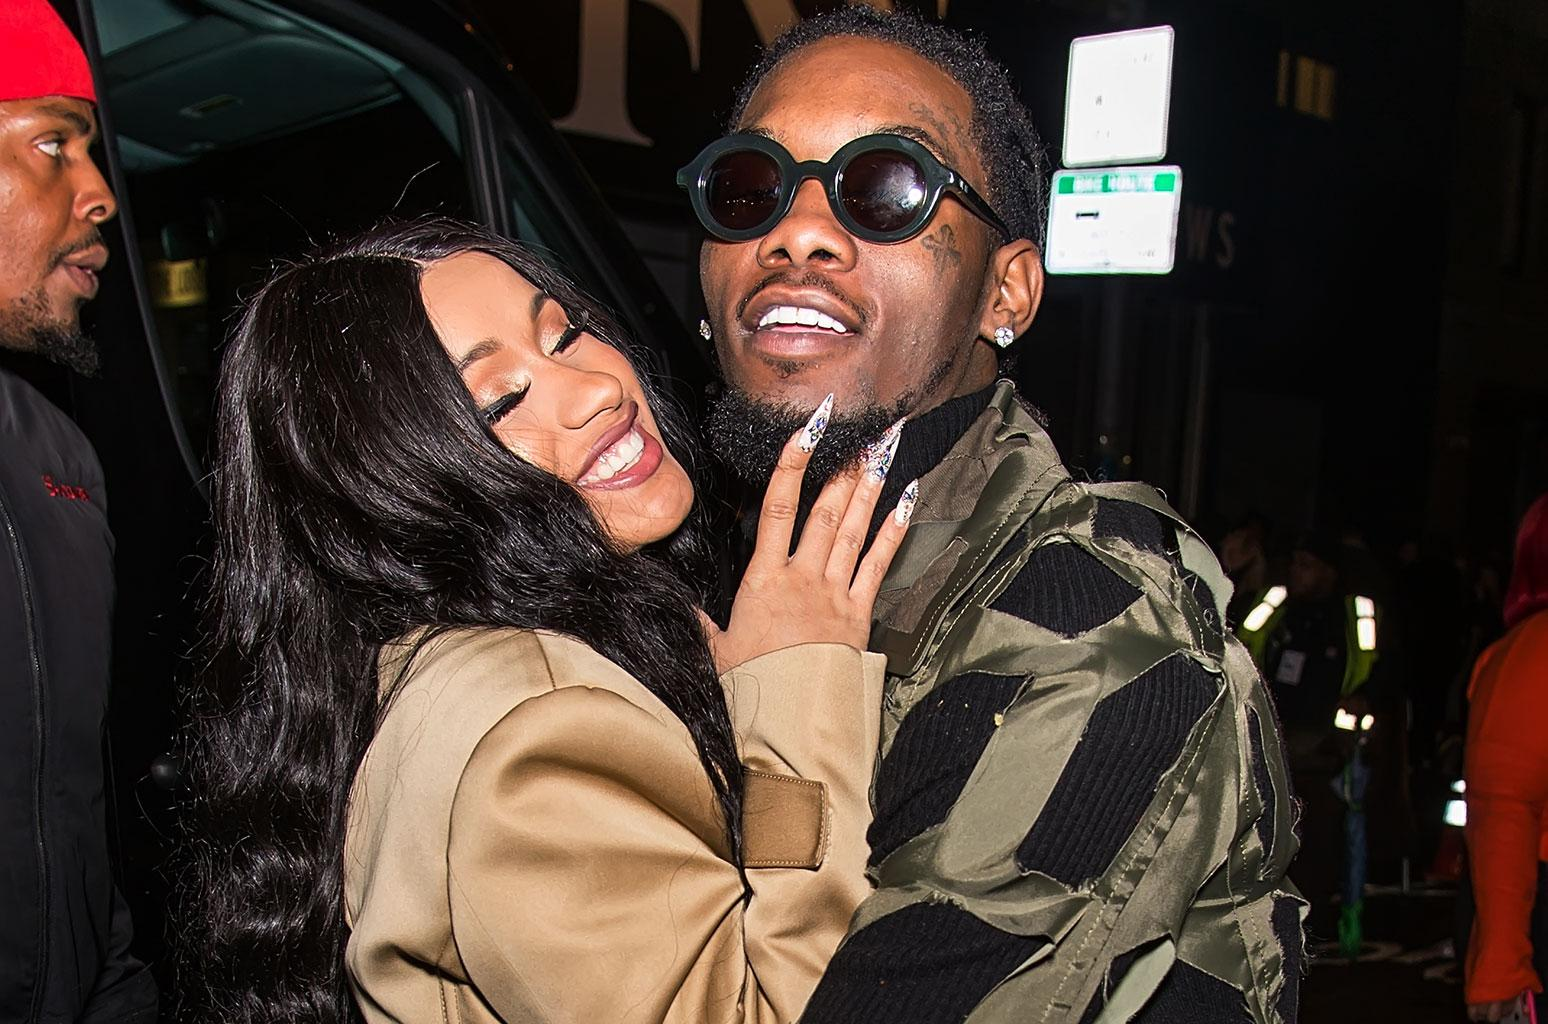 Cardi B And Offset - Friends Don't Want Them To Divorce, Source Says